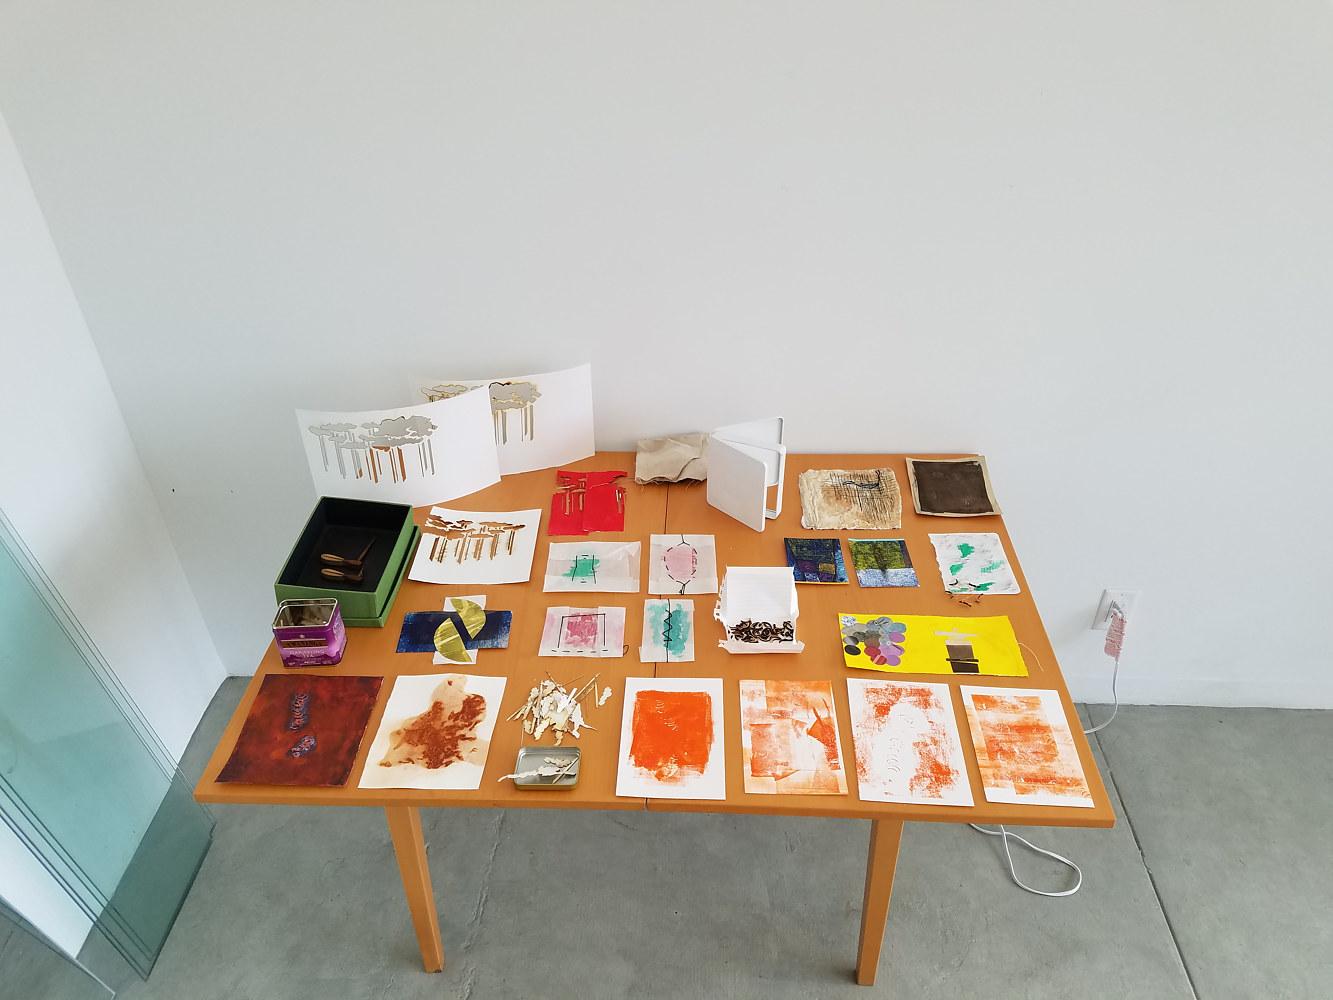 Drawing Correspondence (with Betsy Lohrer Hall) by Jacqueline Bell Johnson